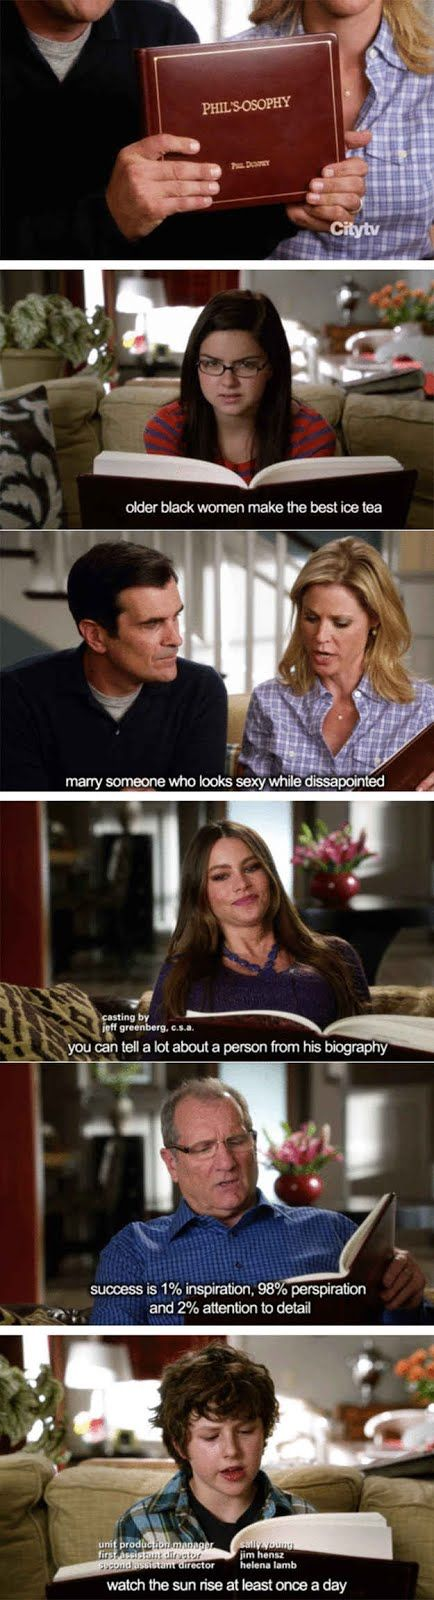 Modern Family Fan Blog: #6 Philsophy